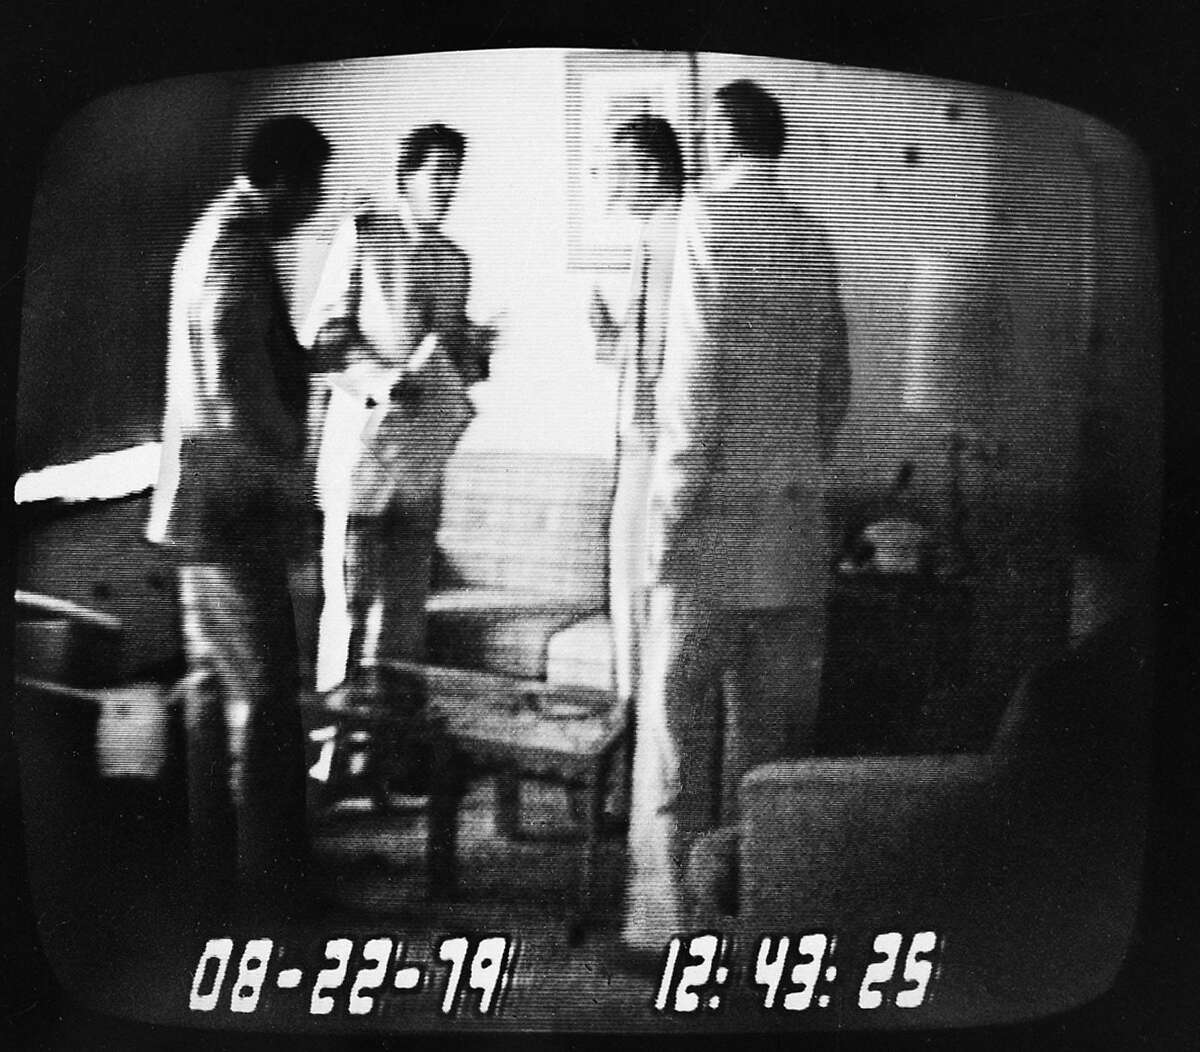 ** FILE ** Rep. Michael Myers, second from left, holds an envelope containing $50,000 which he just received from undercover FBI agent Anthony Amoroso, left, in this videotape played at the first Abscam trial Oct. 14, 1980. Also shown in the photo, made from a television monitor of an NBC broadcast, are co-defendant Angelo Errichetti, second from right, and convicted con man Mel Weinberg. (AP Photo/File)